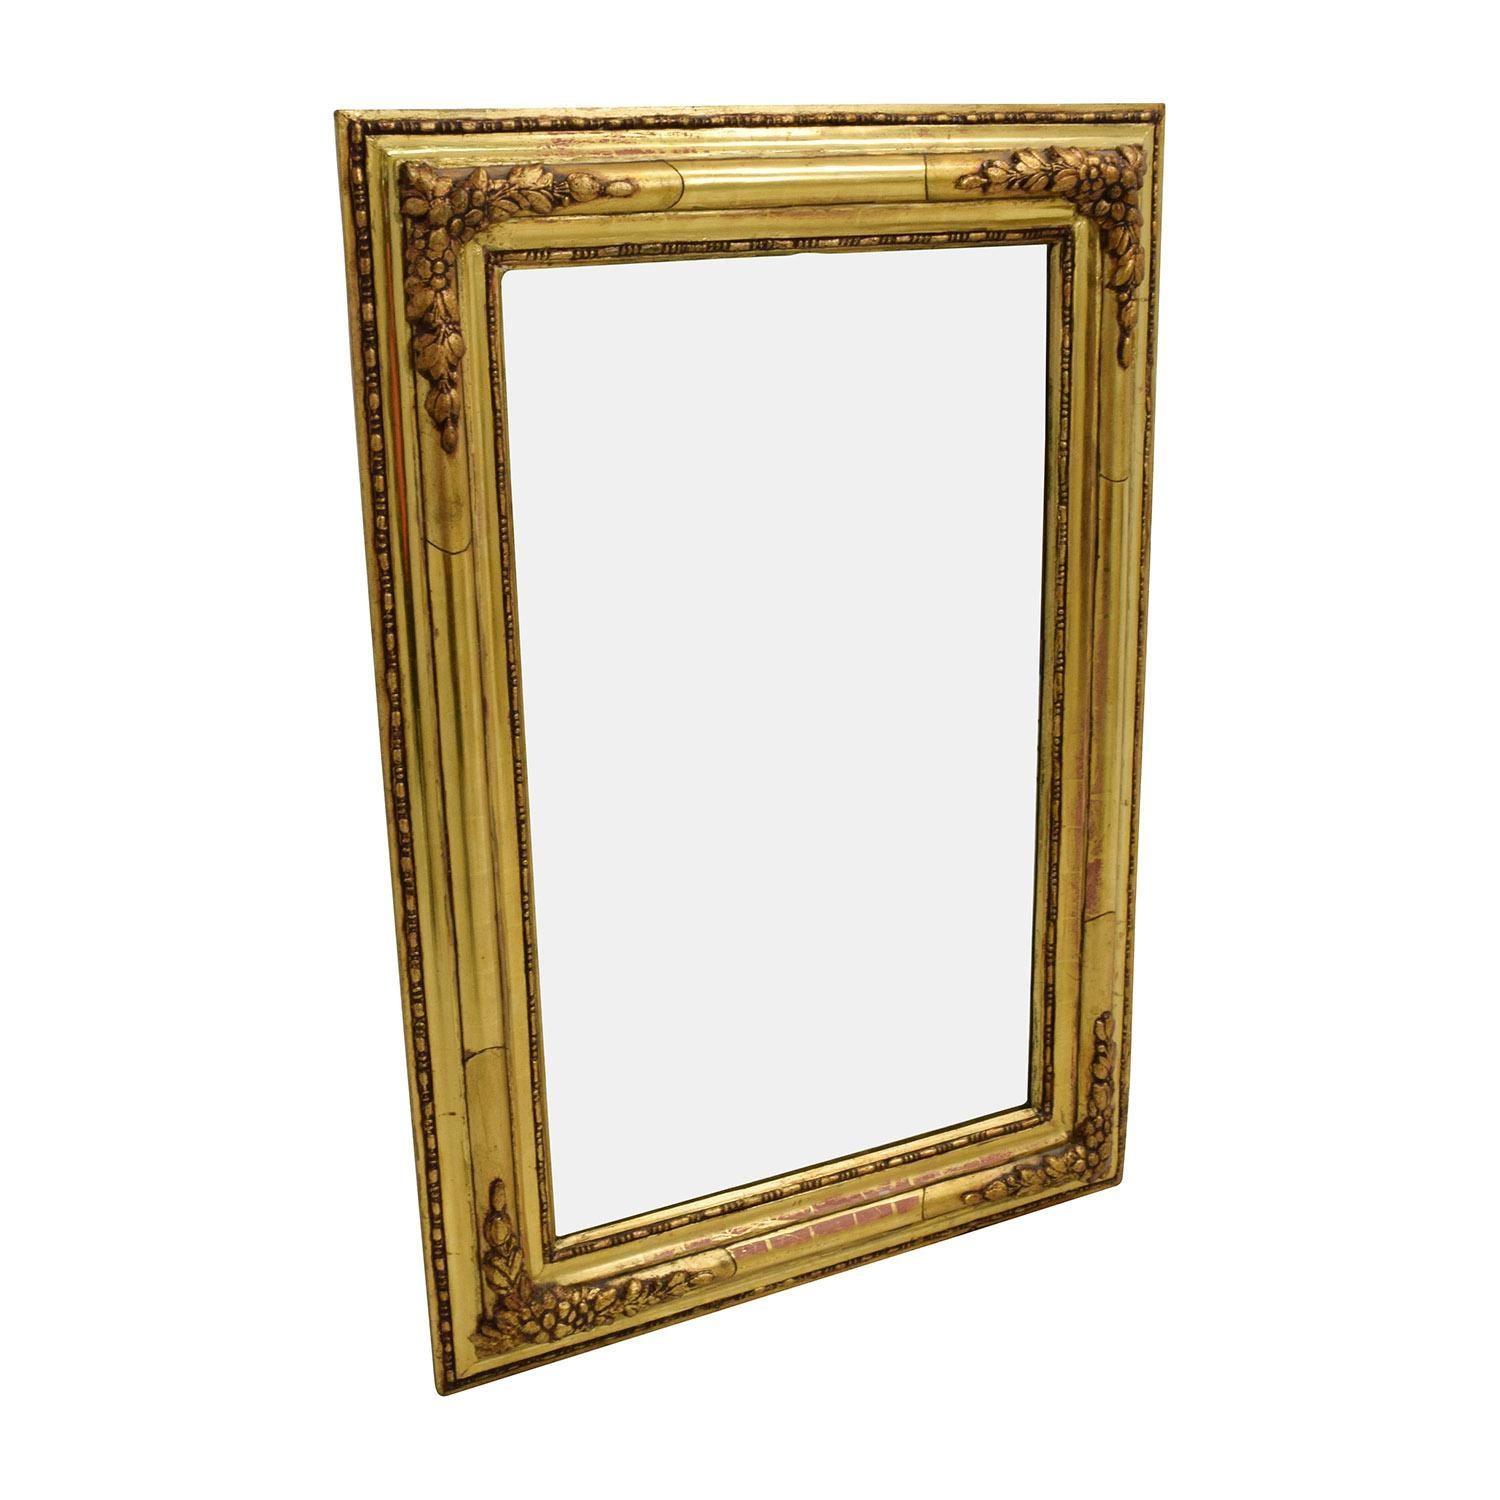 36% Off – Gold Frame Oblong Mirrors / Decor Intended For Gilt Edged Mirror (Image 3 of 20)